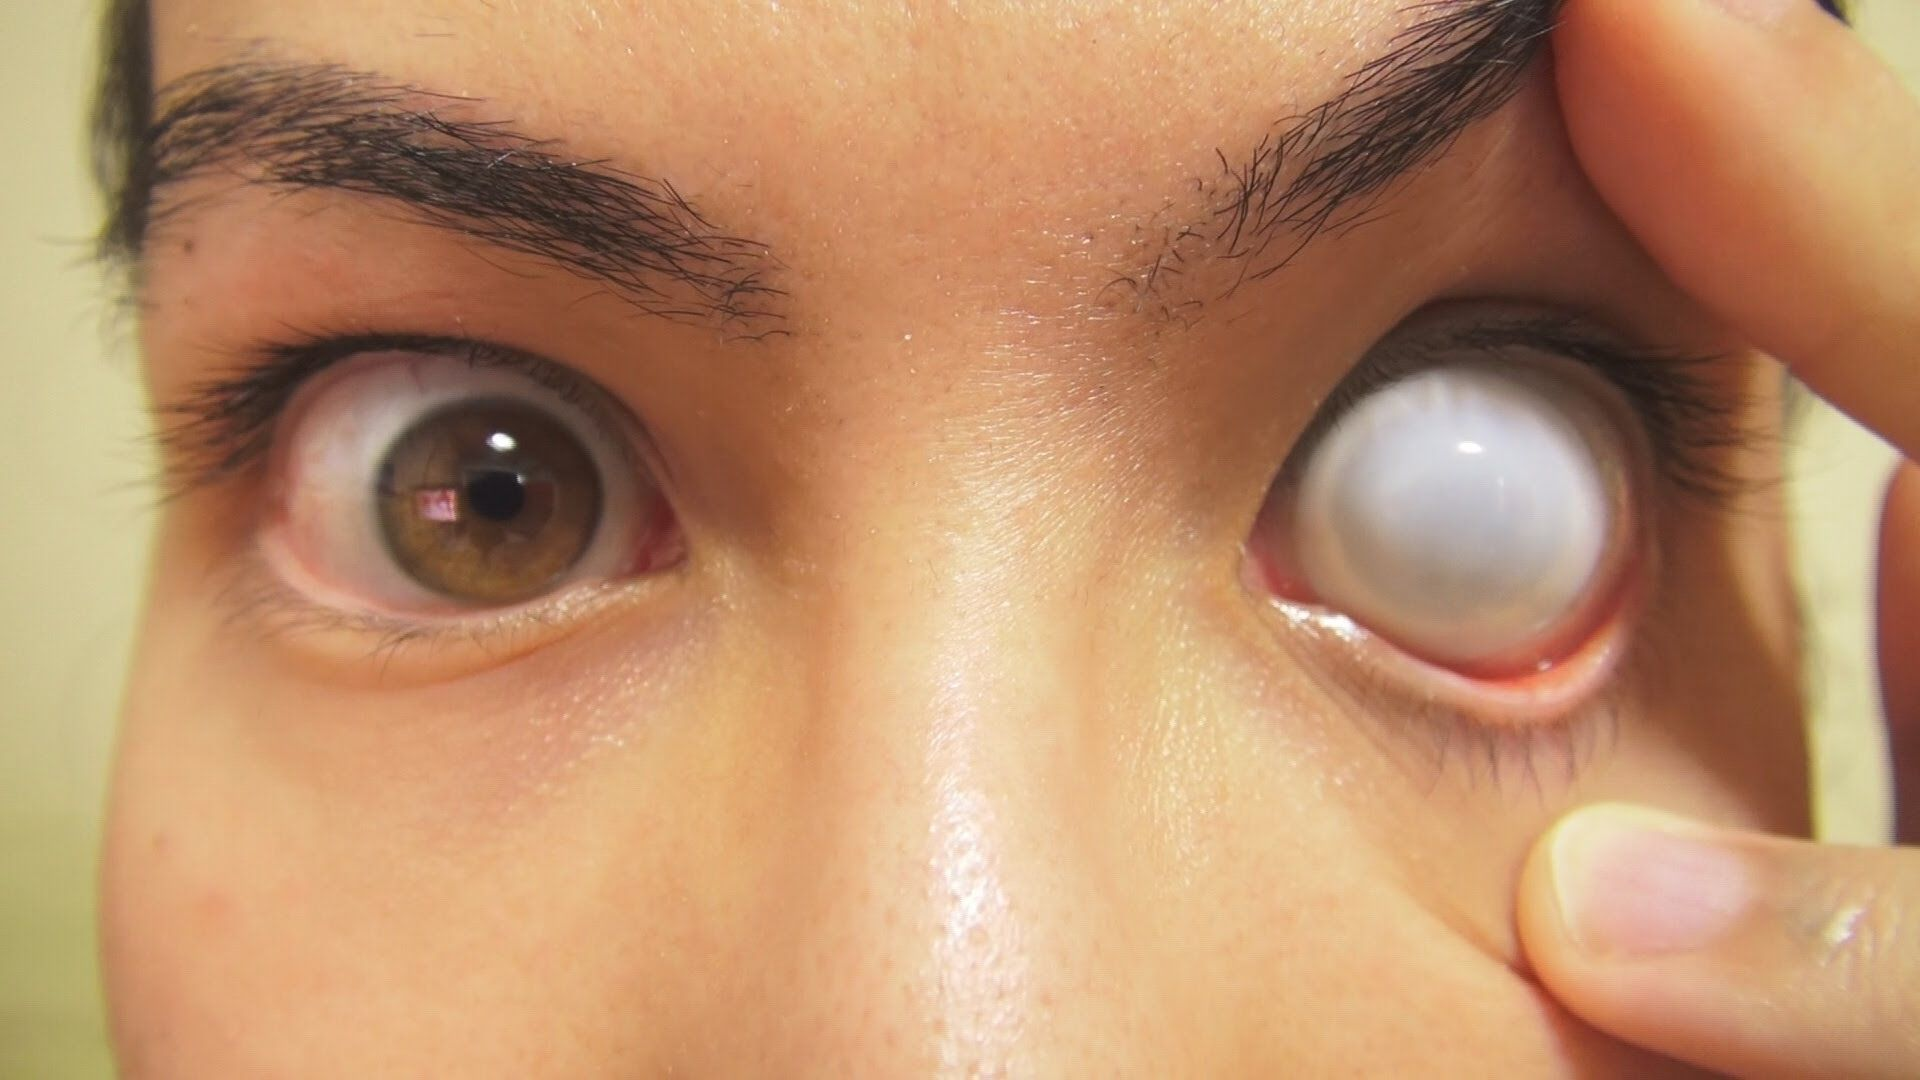 How To Insert And Remove Cataract Sclera Contact Lens